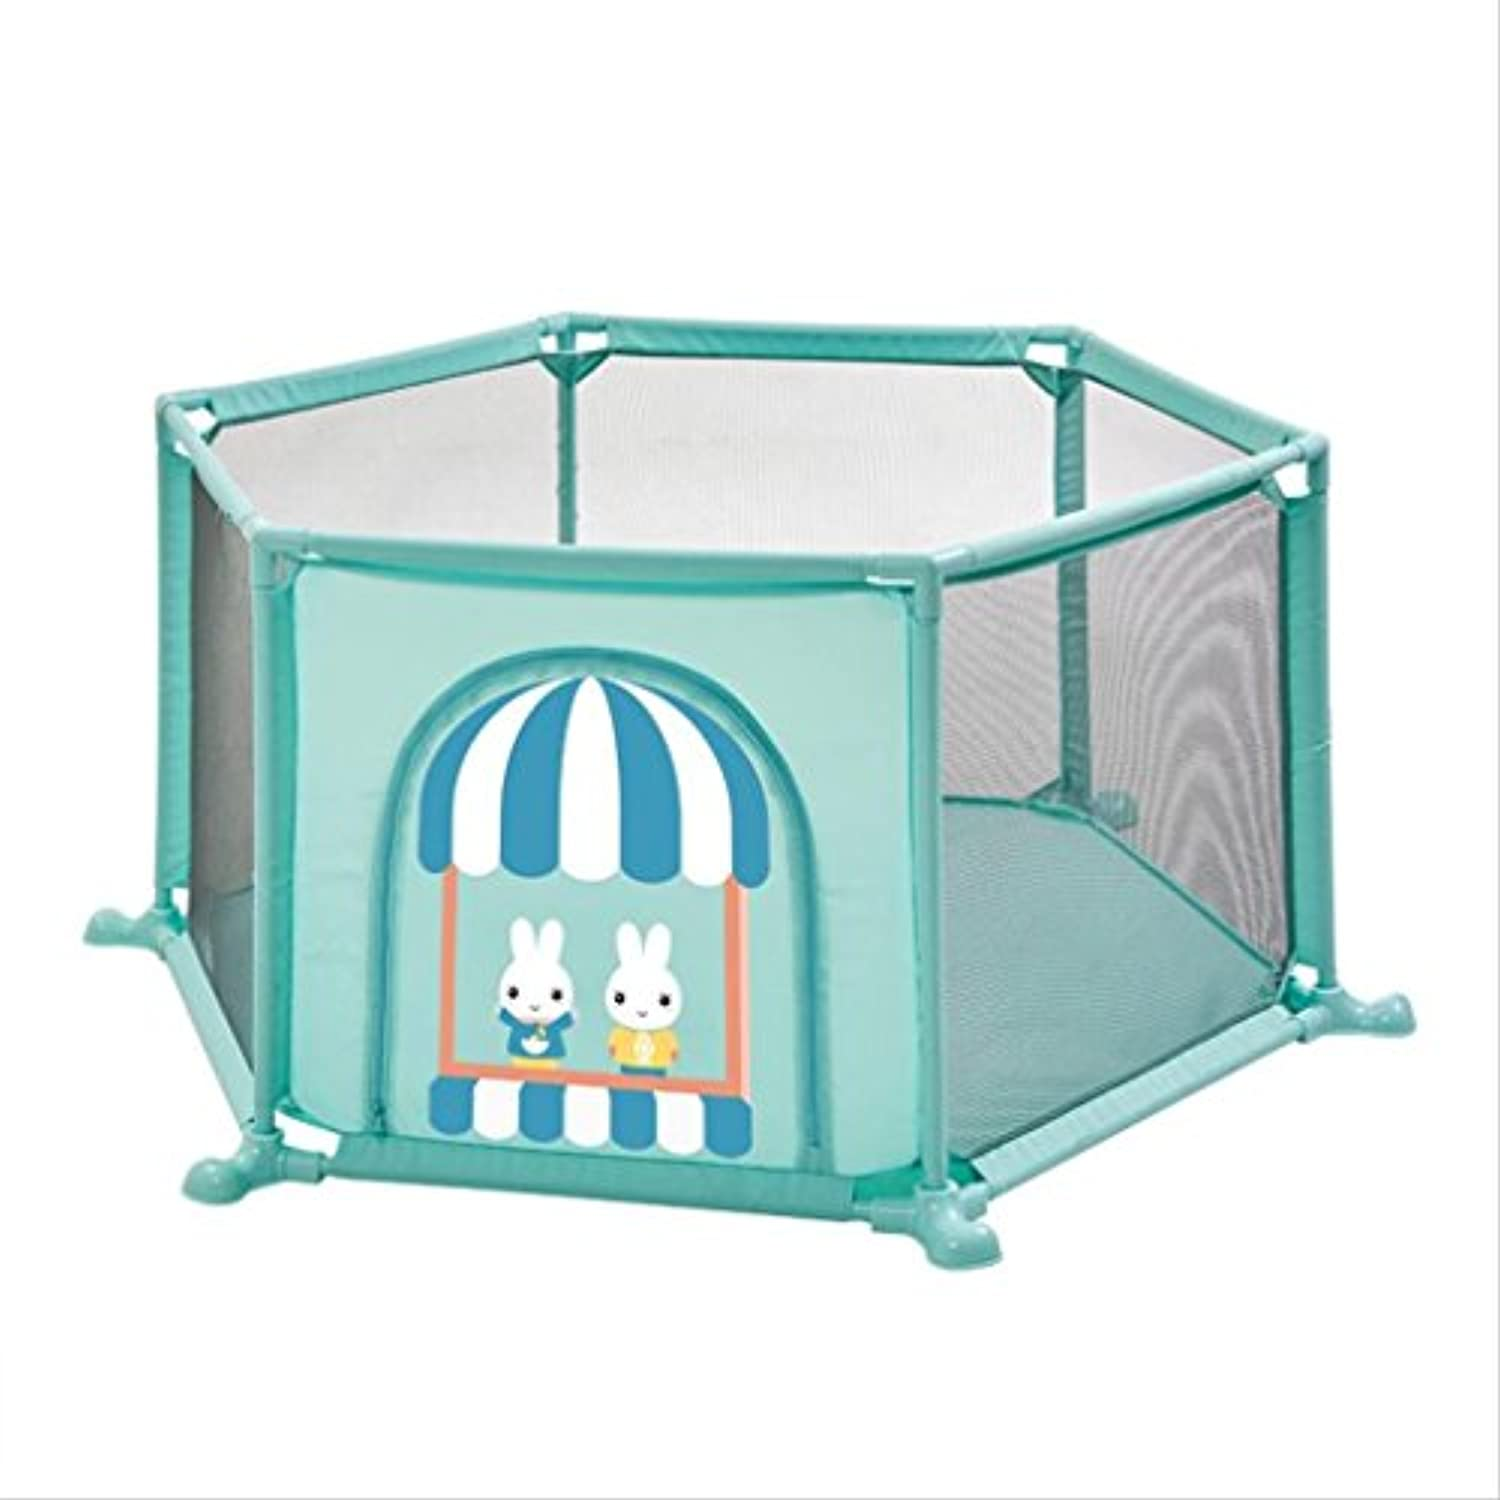 Play YardホームPlayfence Playpens for Playtmat Playmat Baby Playpence Baby Playpens Playpens for Baby (Color : Blue, Size : 160 * 67cm)